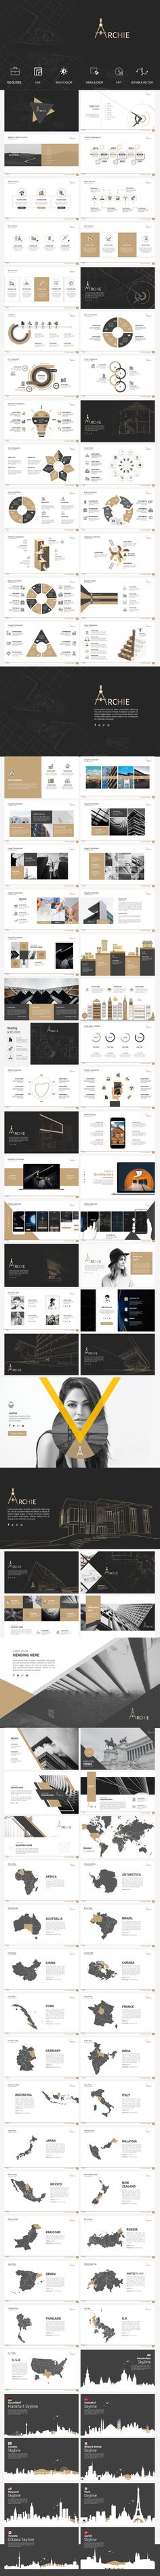 Archie - Animated Presentation Template by afomindia What鈥檚 IncludedArchie Powerpoint Presentation (Full Animation).pptx Archie Powerpoint Presentation (No Animation). Ppt Design, Keynote Design, Design Brochure, Slide Design, Layout Design, Ppt Template Design, Keynote Presentation, Design Presentation, Presentation Slides